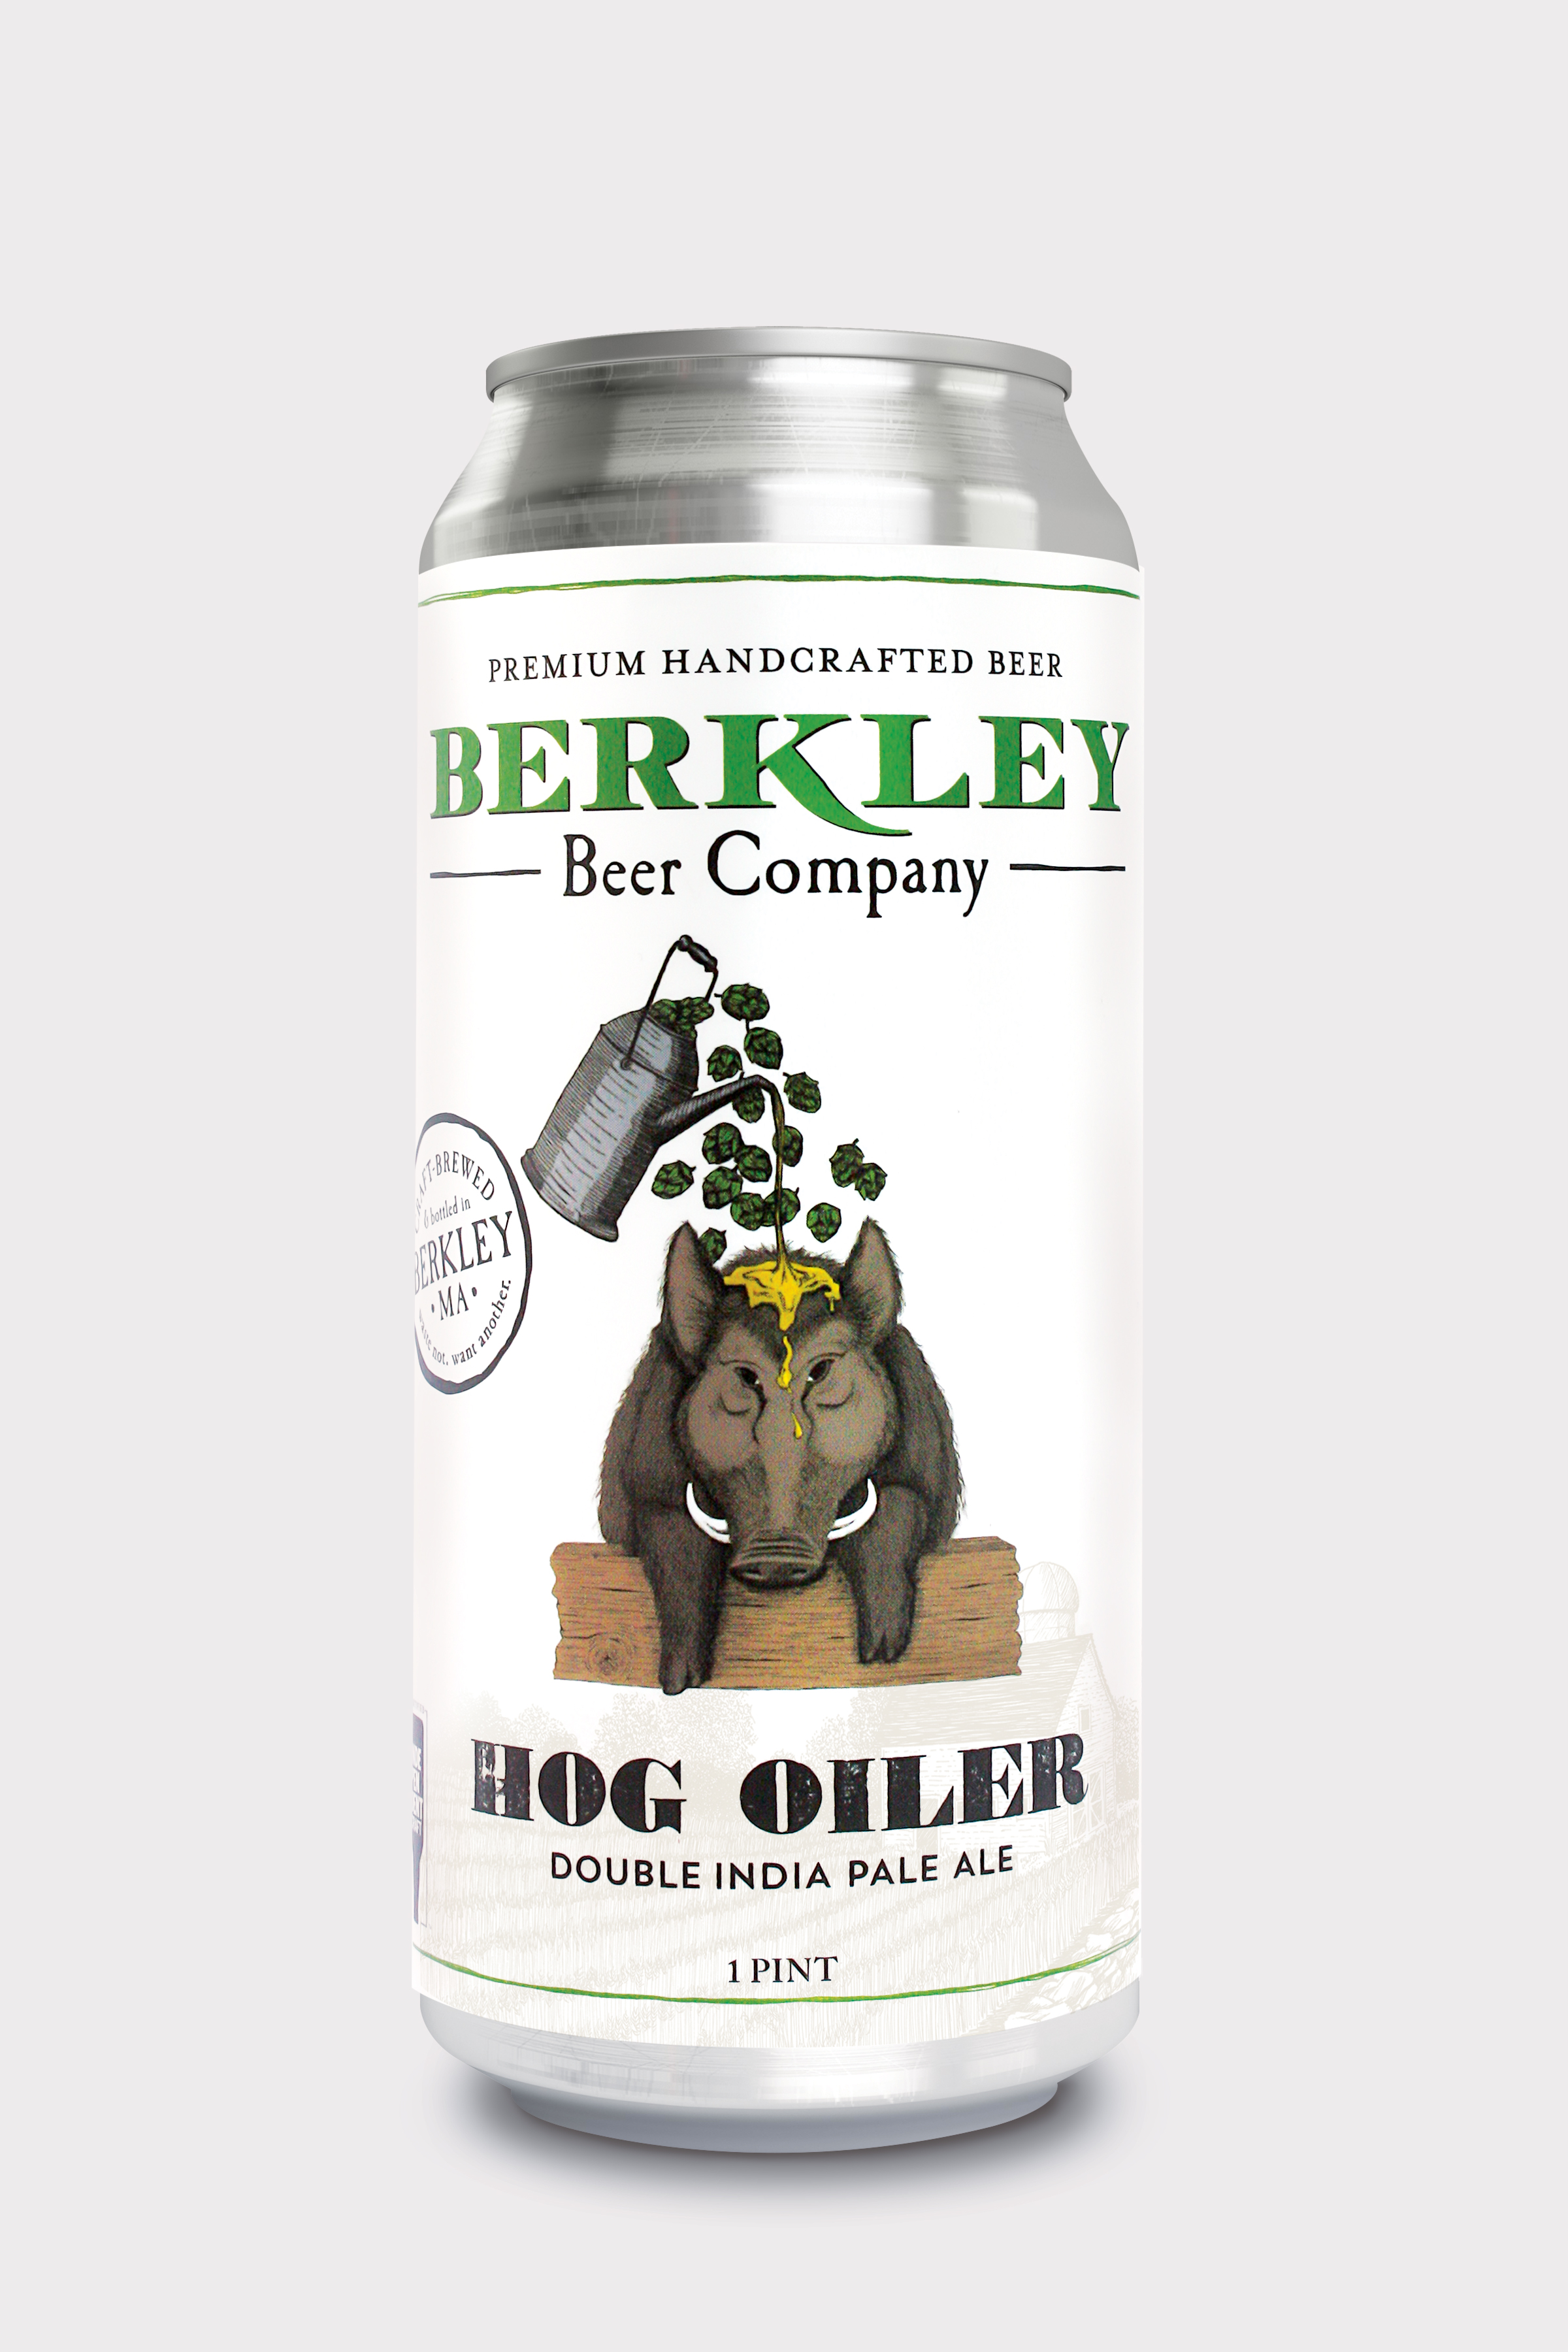 Hog Oiler 8%  Berkley's Hog Oiler Double IPA is thick and juicy with robust flavor. Loaded with hops and balanced with tropical fruity notes, our Hog Oiler is both drinkable and powerful.